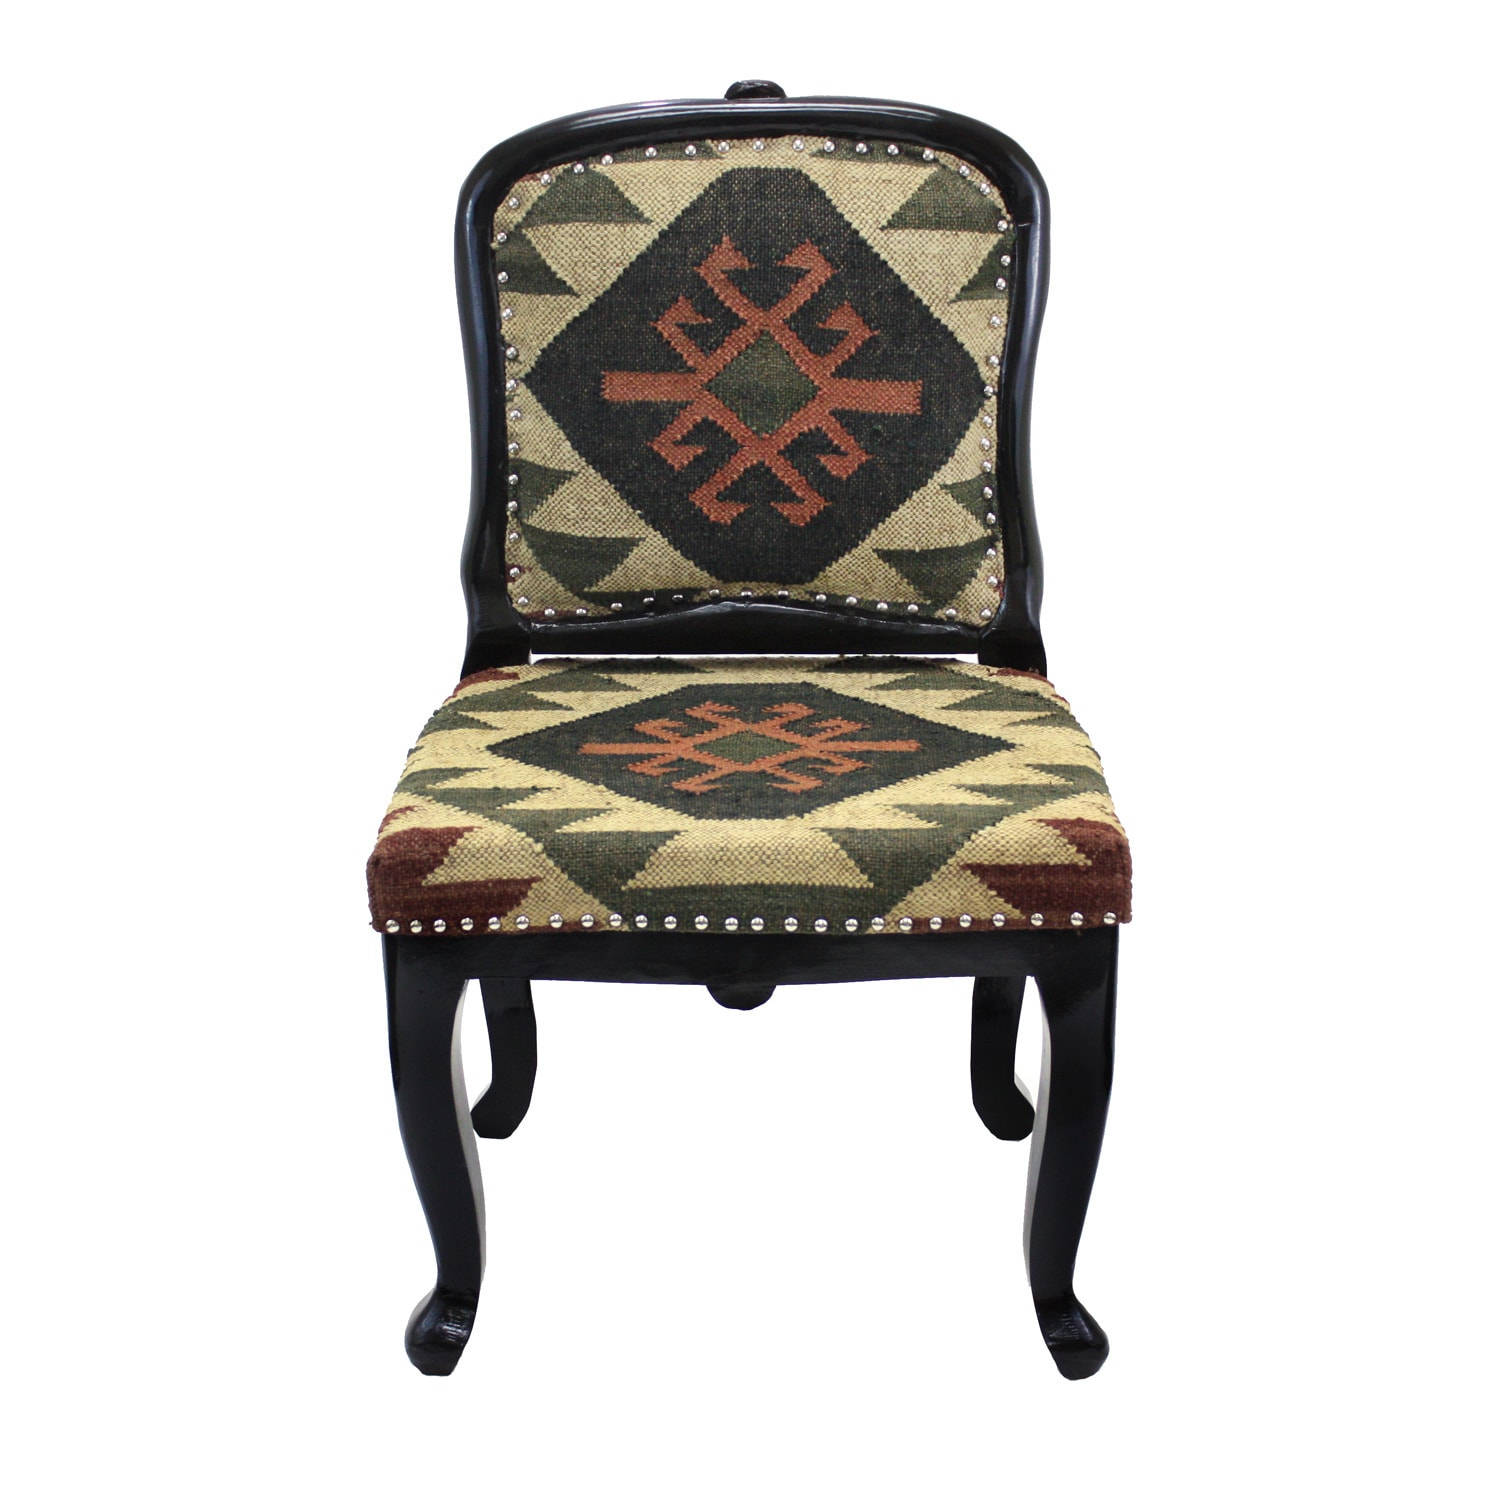 Shop handmade tristan kilim upholstered armless accent chair india free shipping today overstock com 8497662